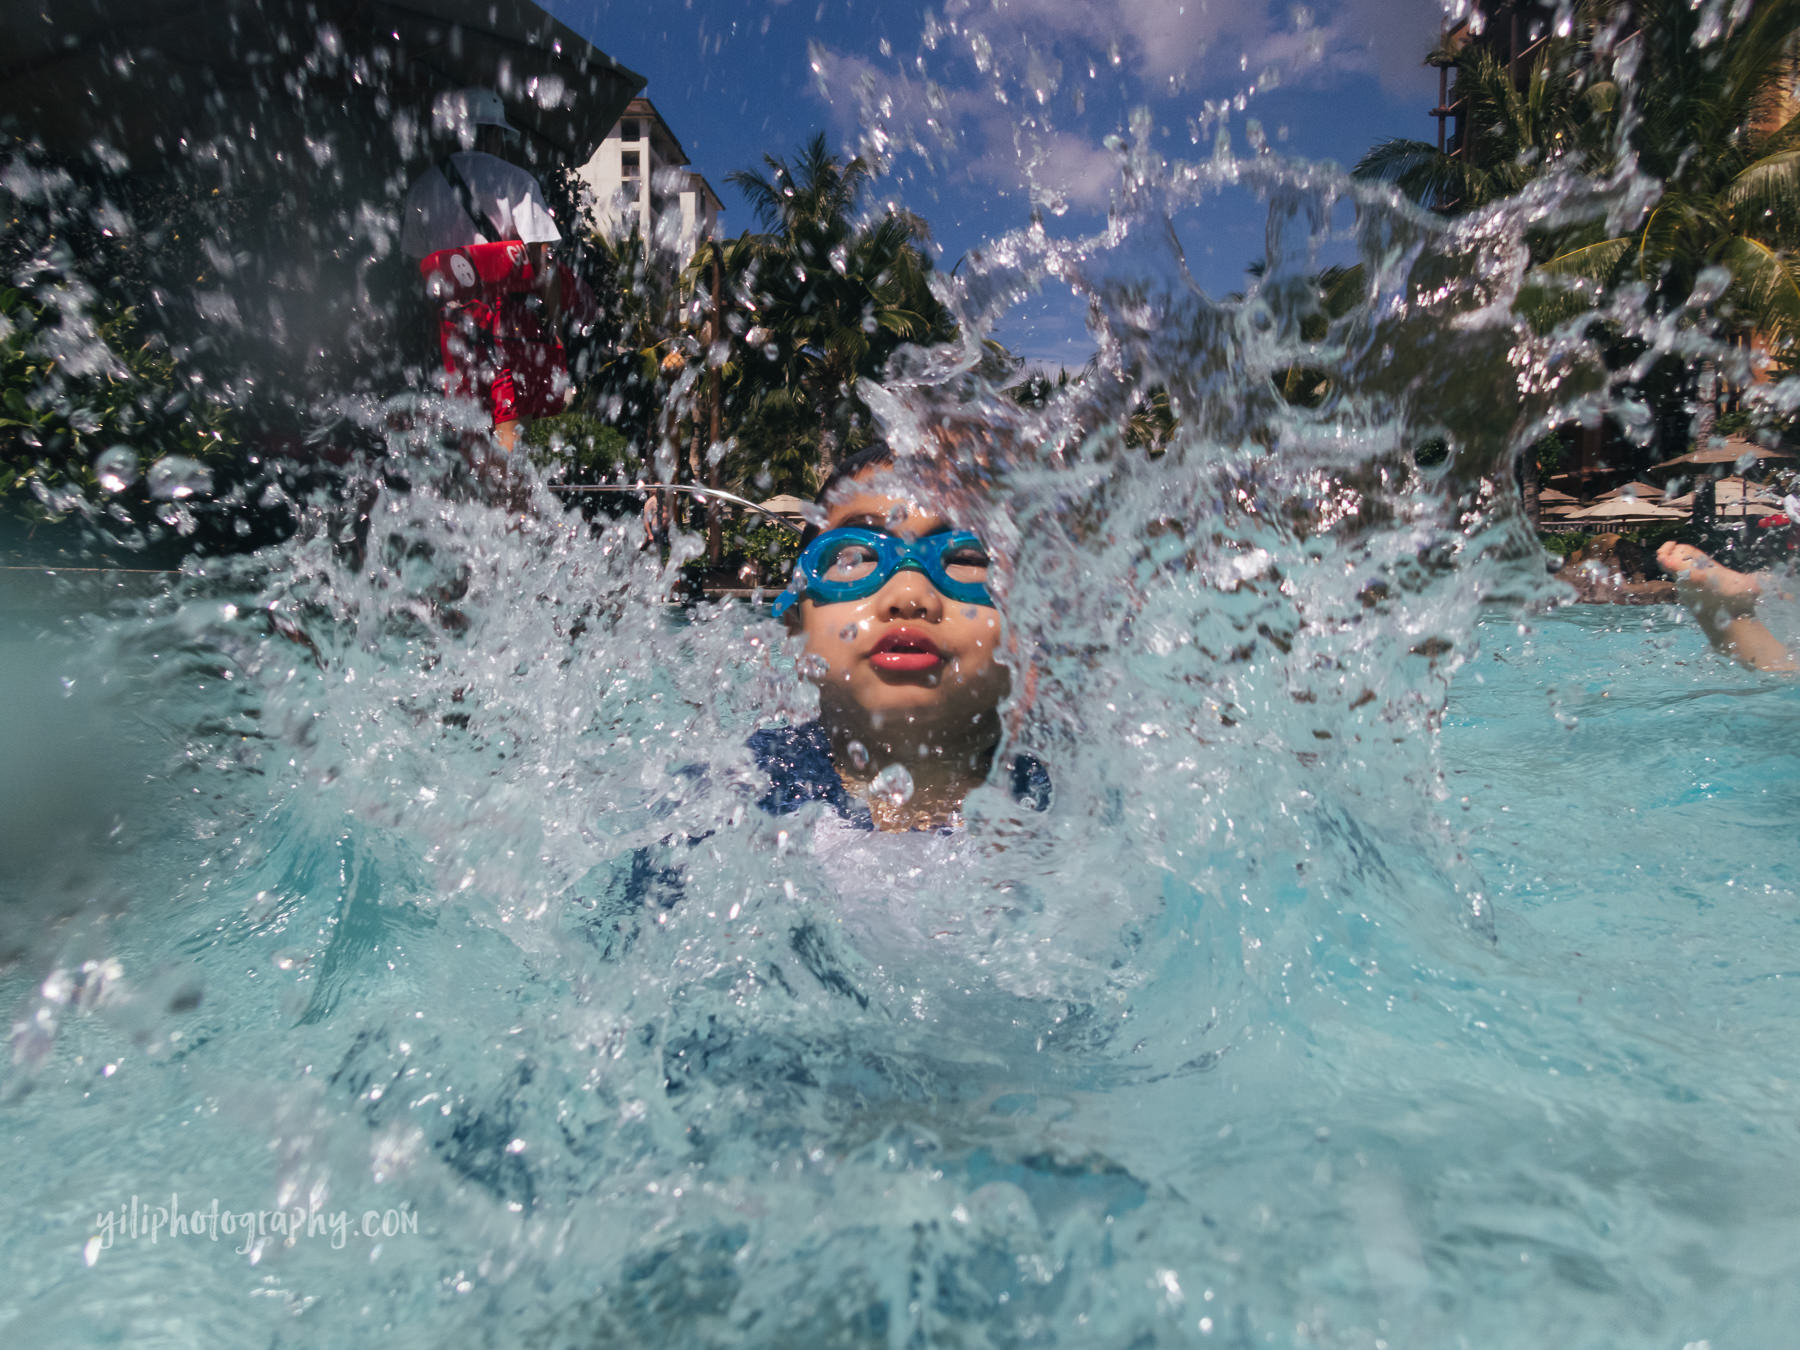 boy splashing water at camera in pool